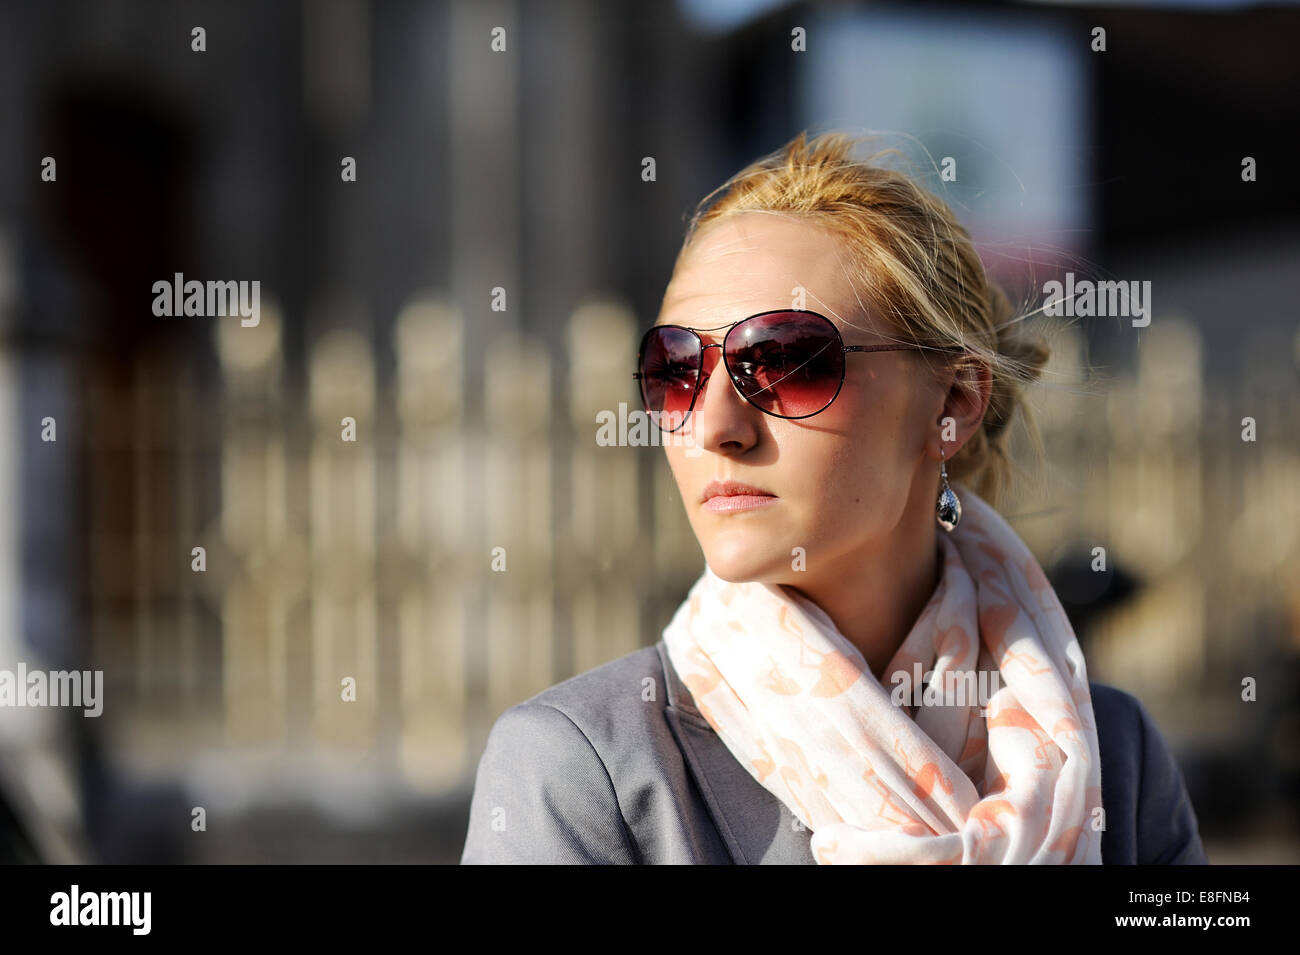 Woman with sunglasses on street in sunny day Stock Photo